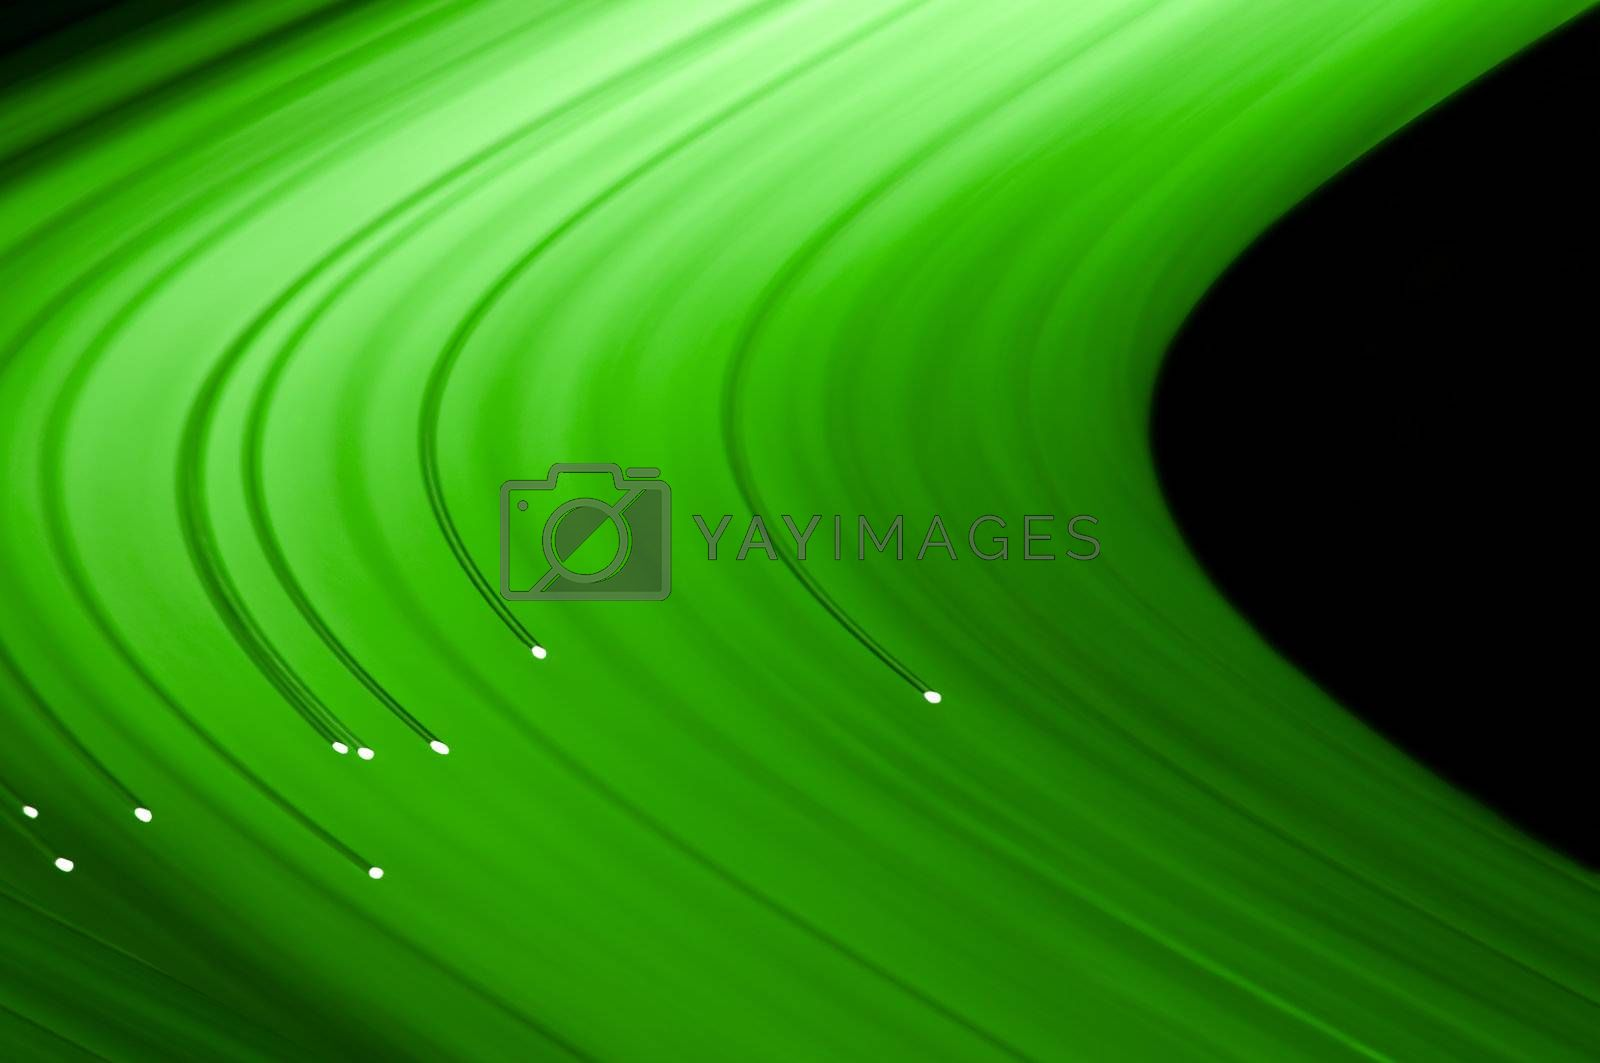 Close up capturing the ends of several illuminated green fibre optic light strands against a black background. Abstract style.